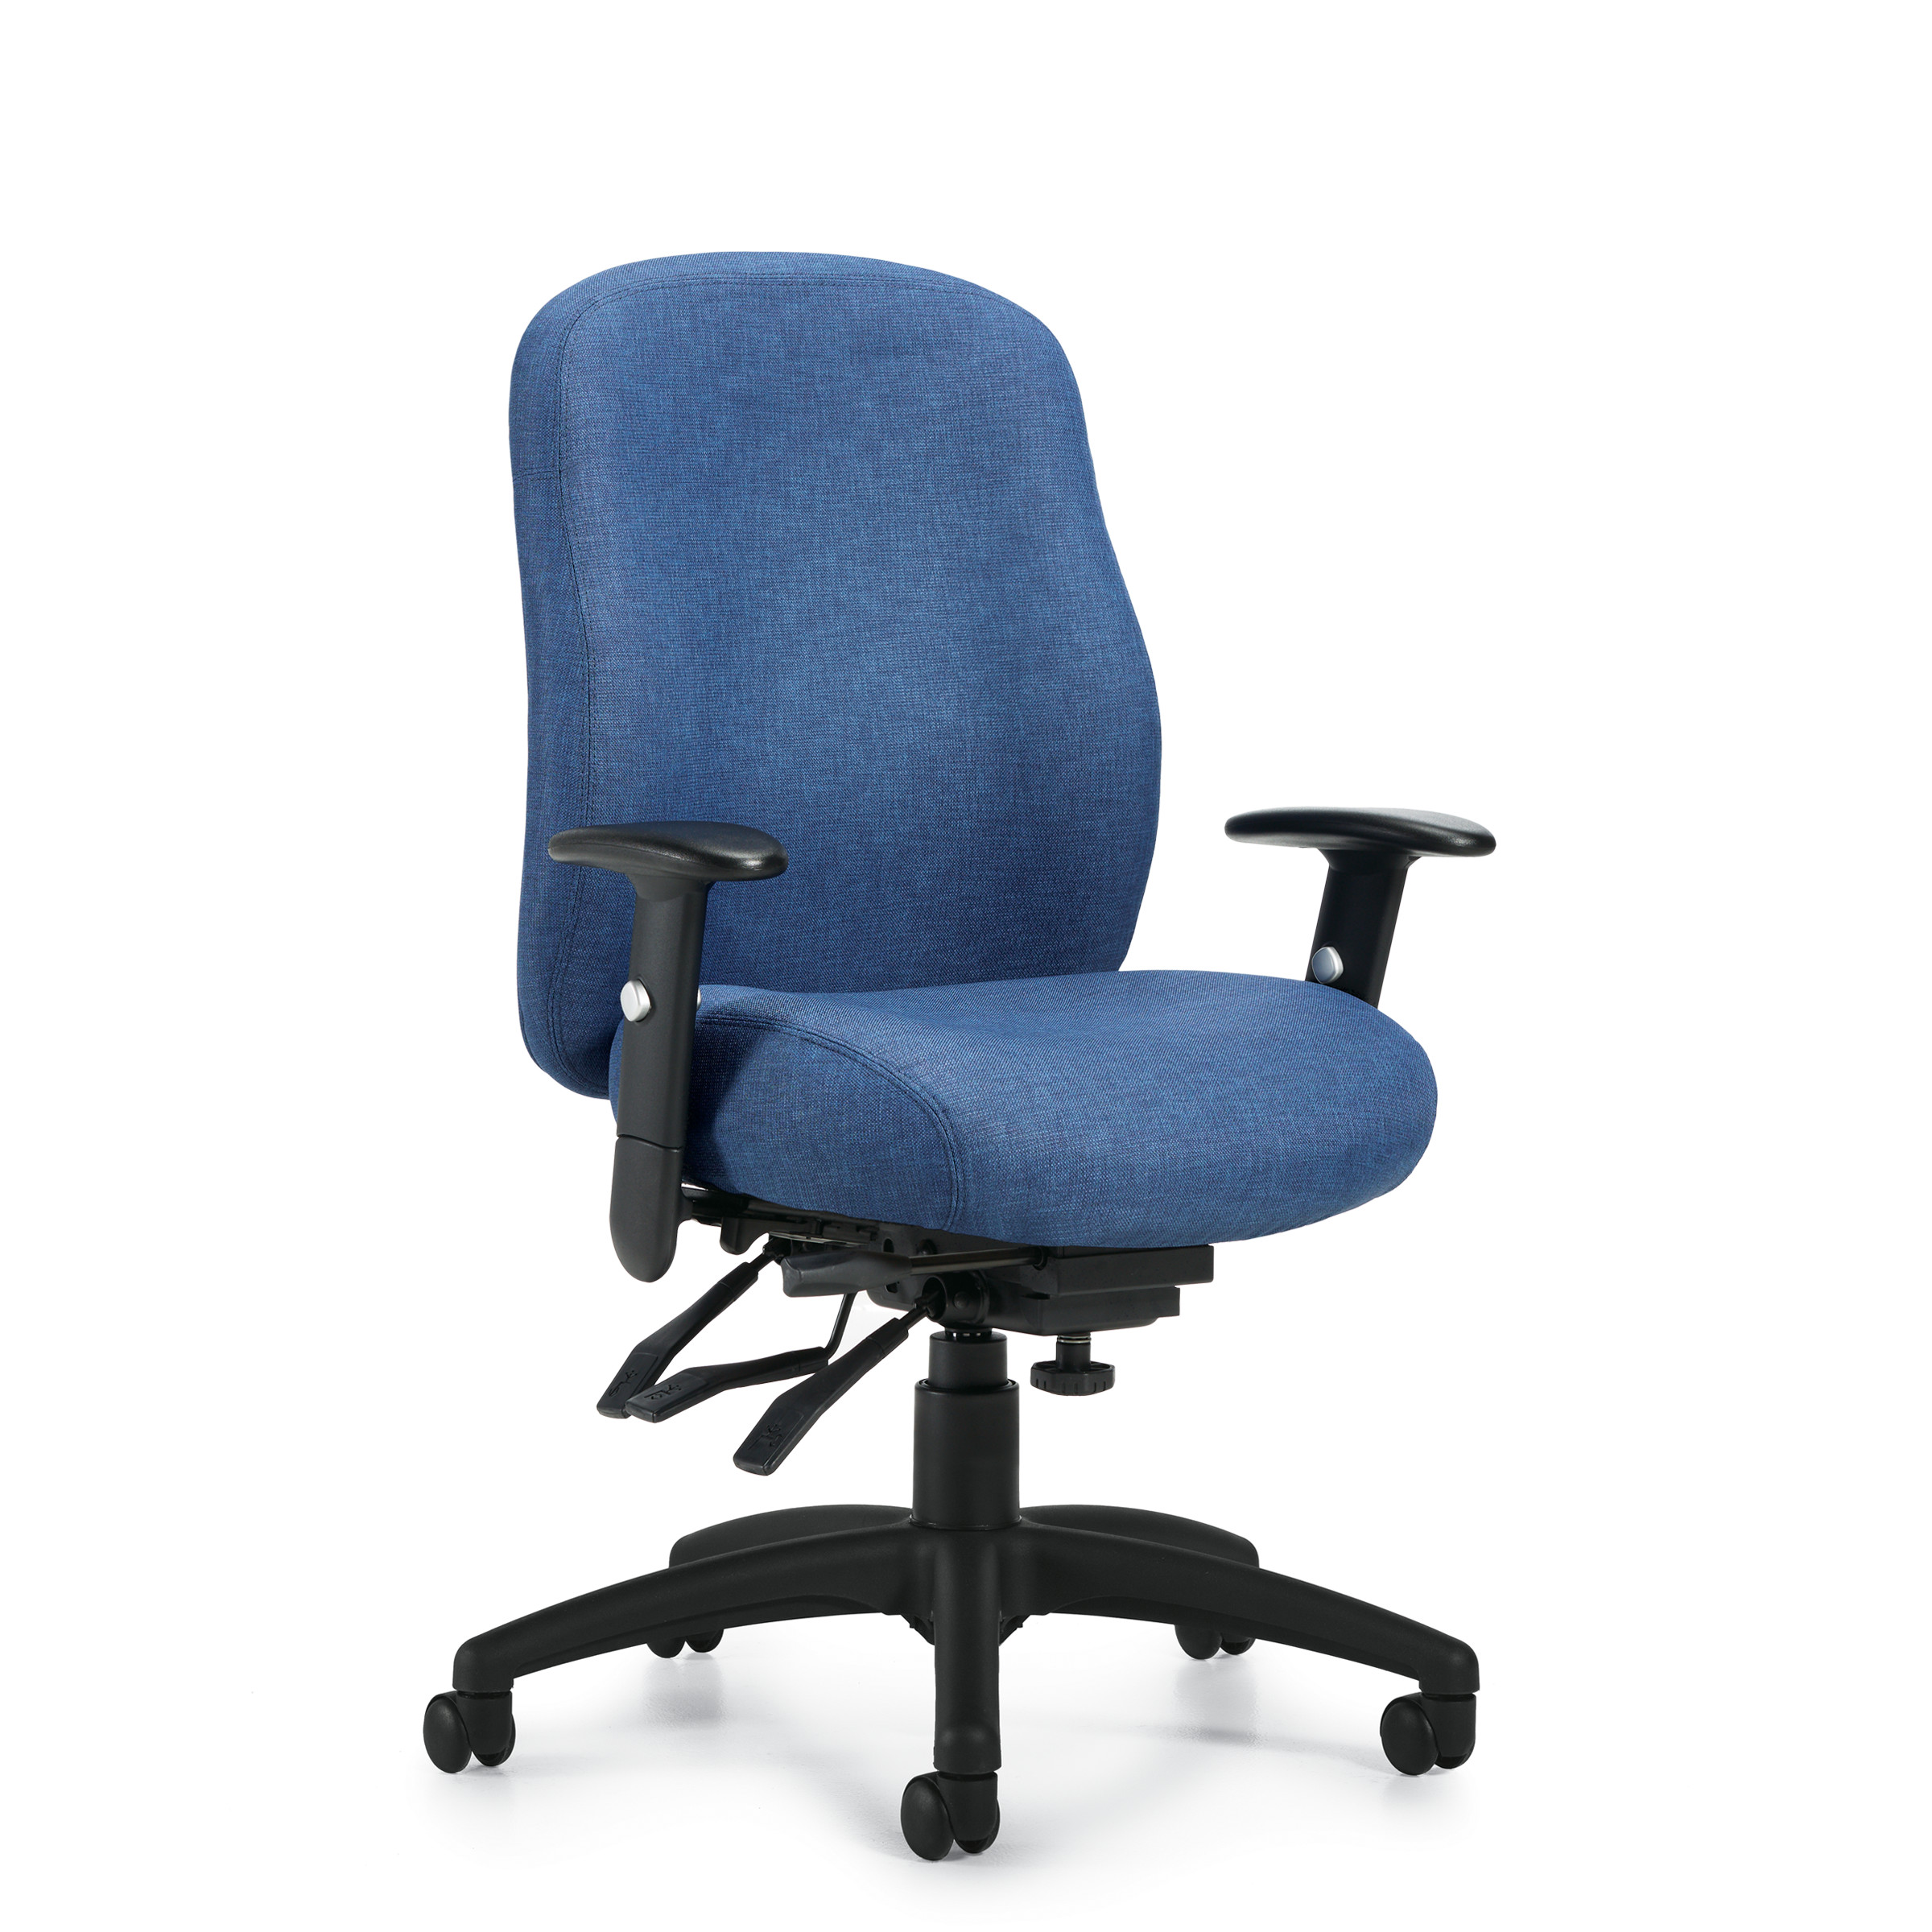 OTG Multi-Function Chair With Arms #OTG11710